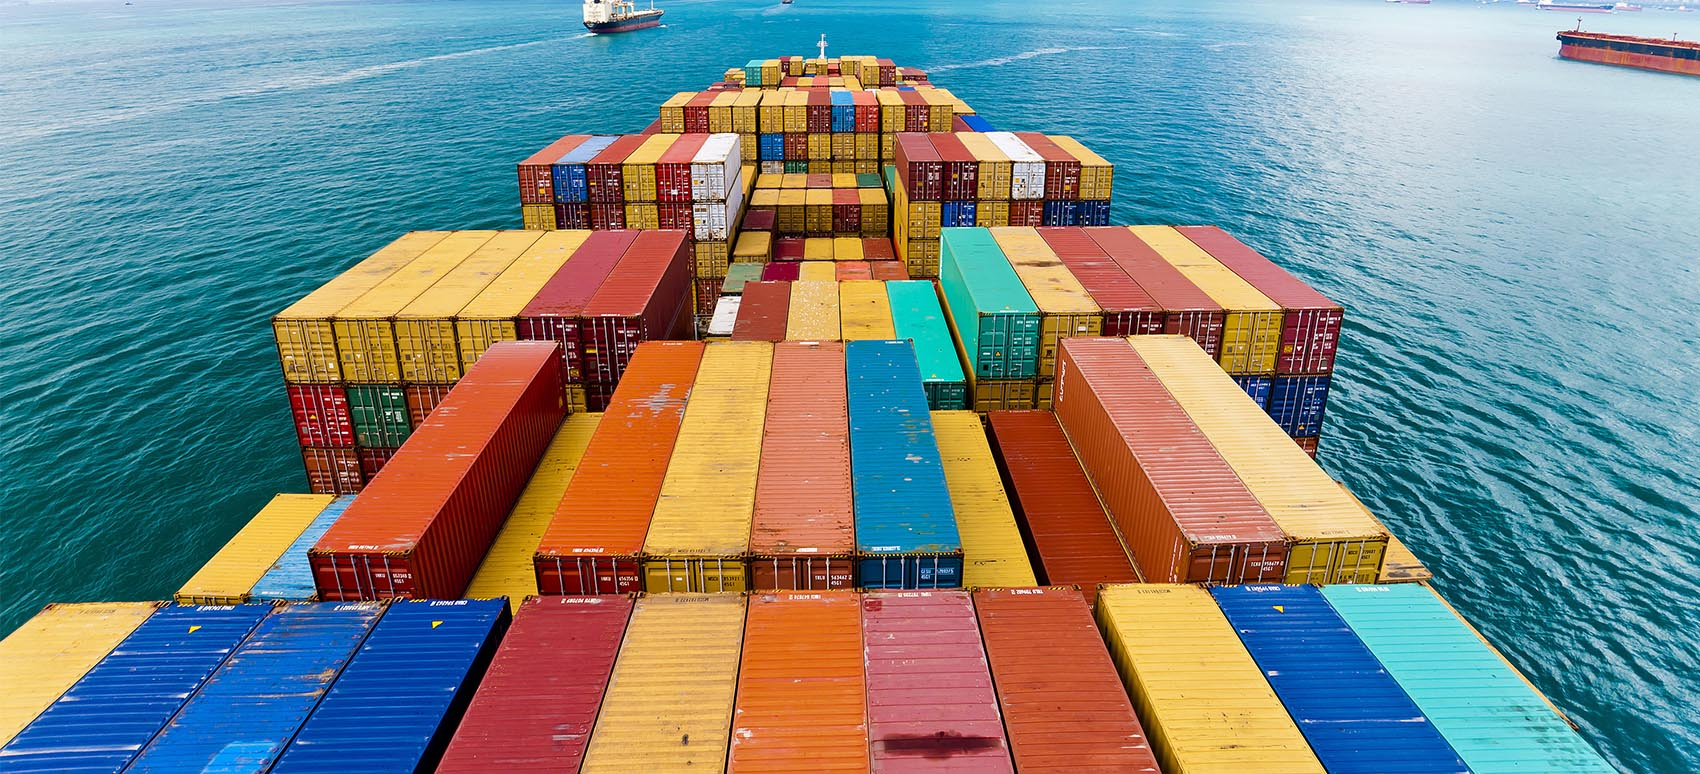 dsv sea freight containers